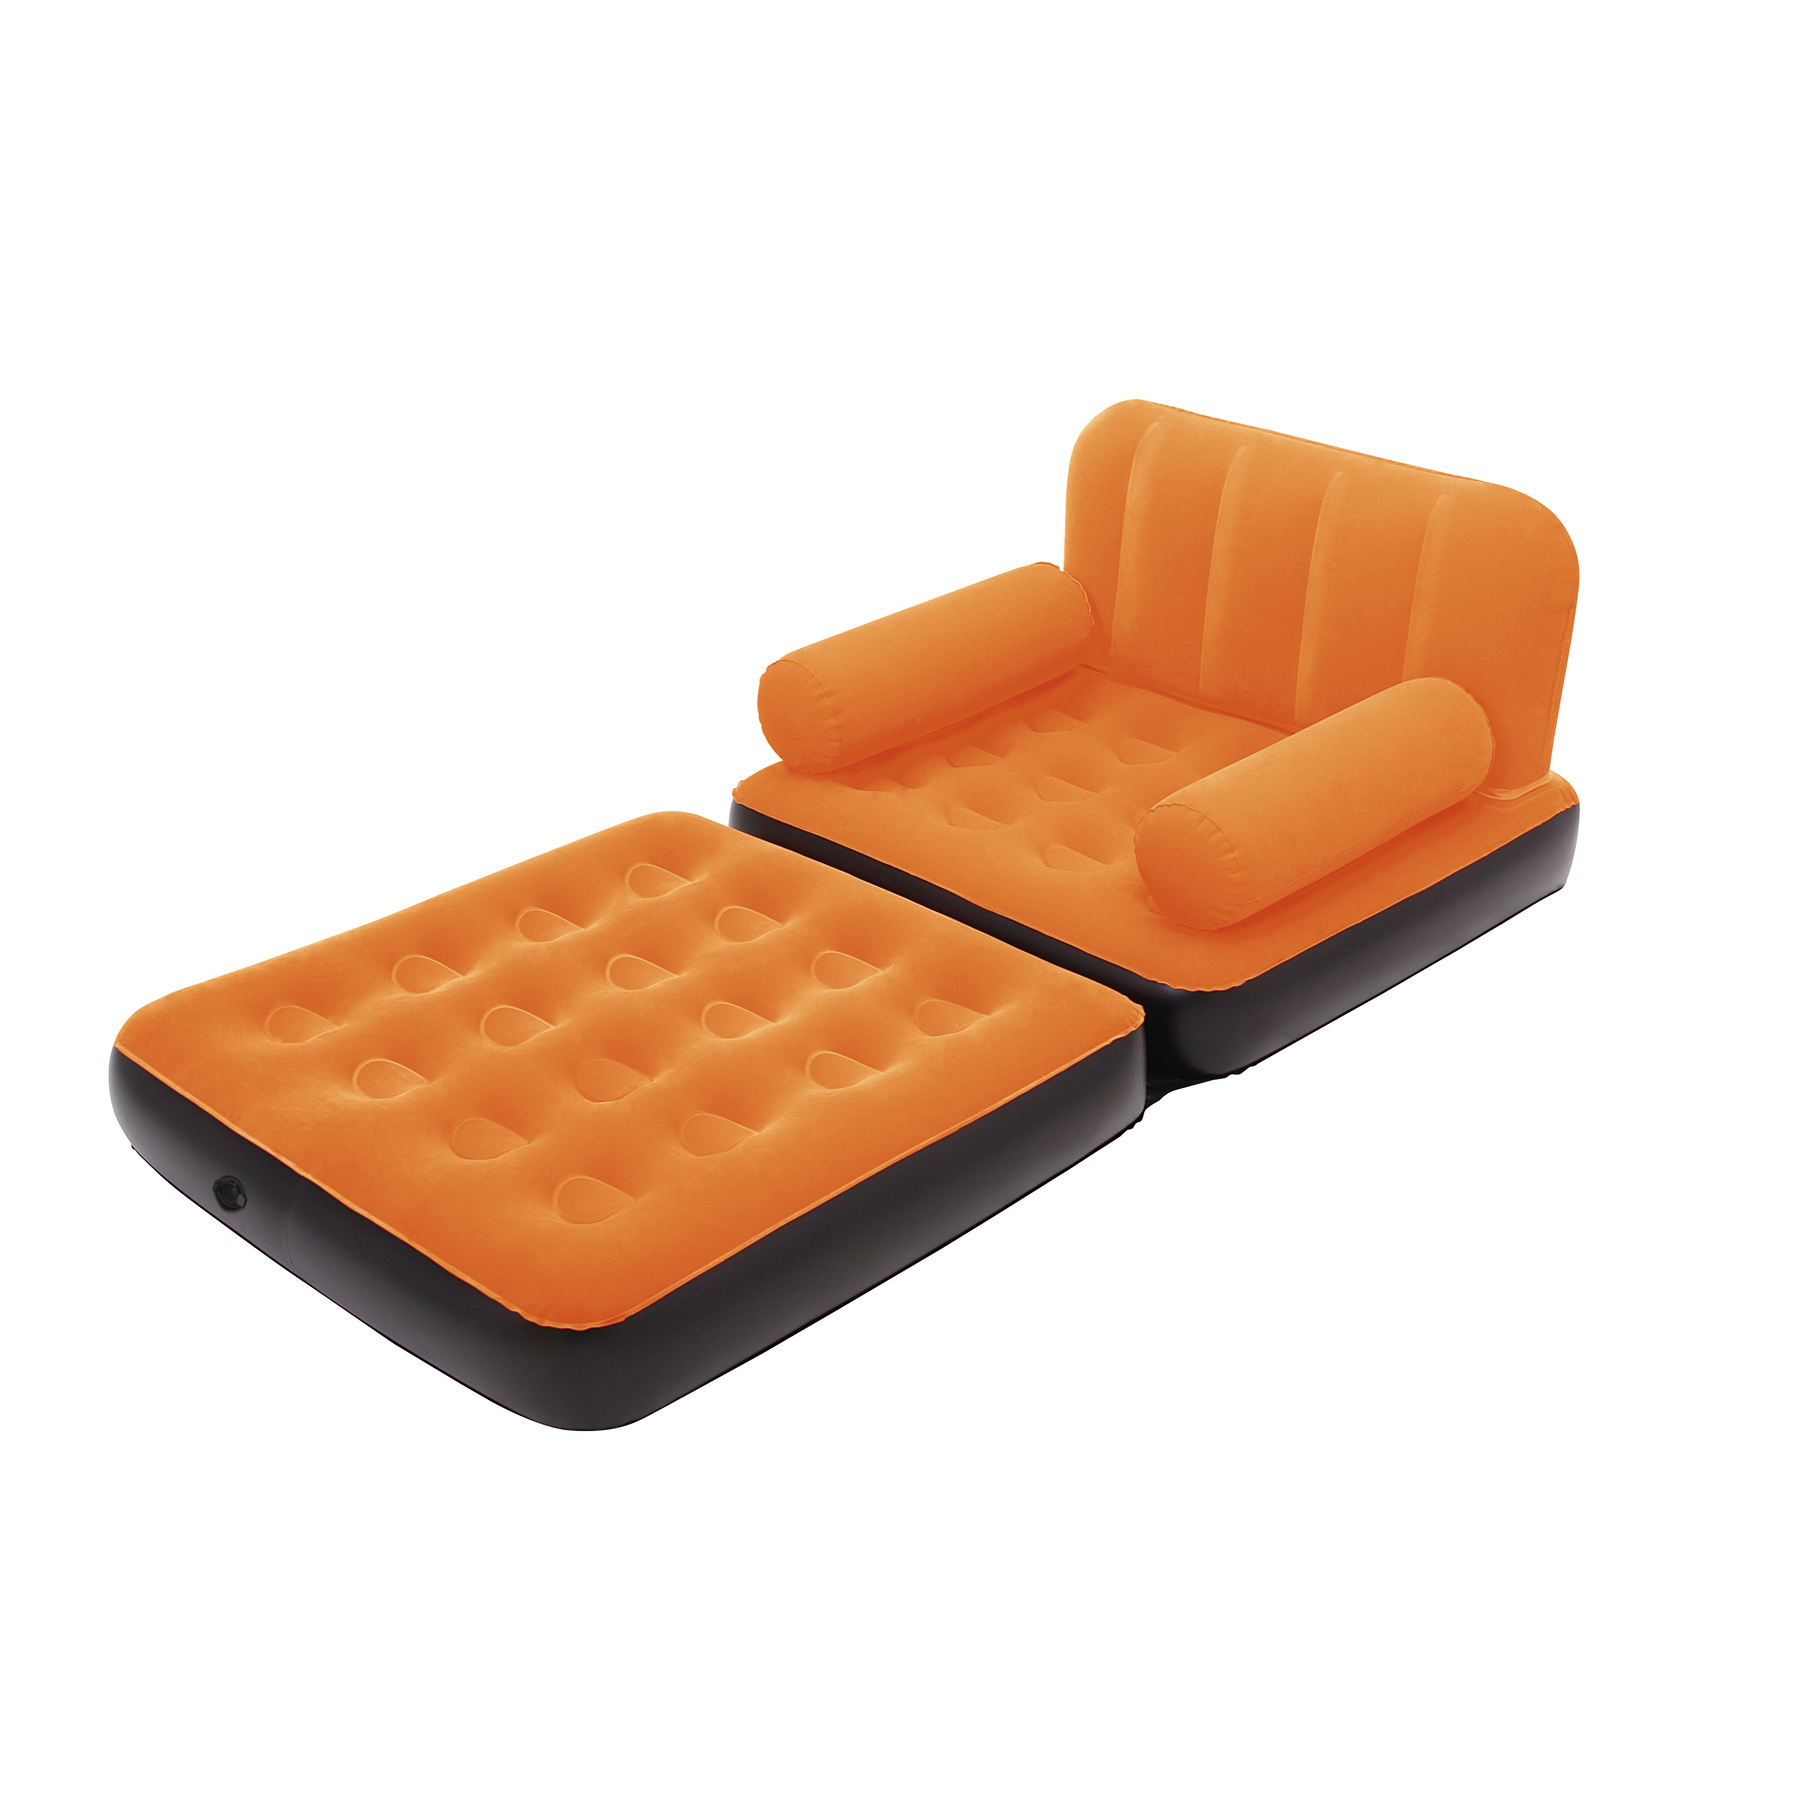 Single Inflatable Chair Bed 191x97x64 Cm, Bestway, Item No. 67277